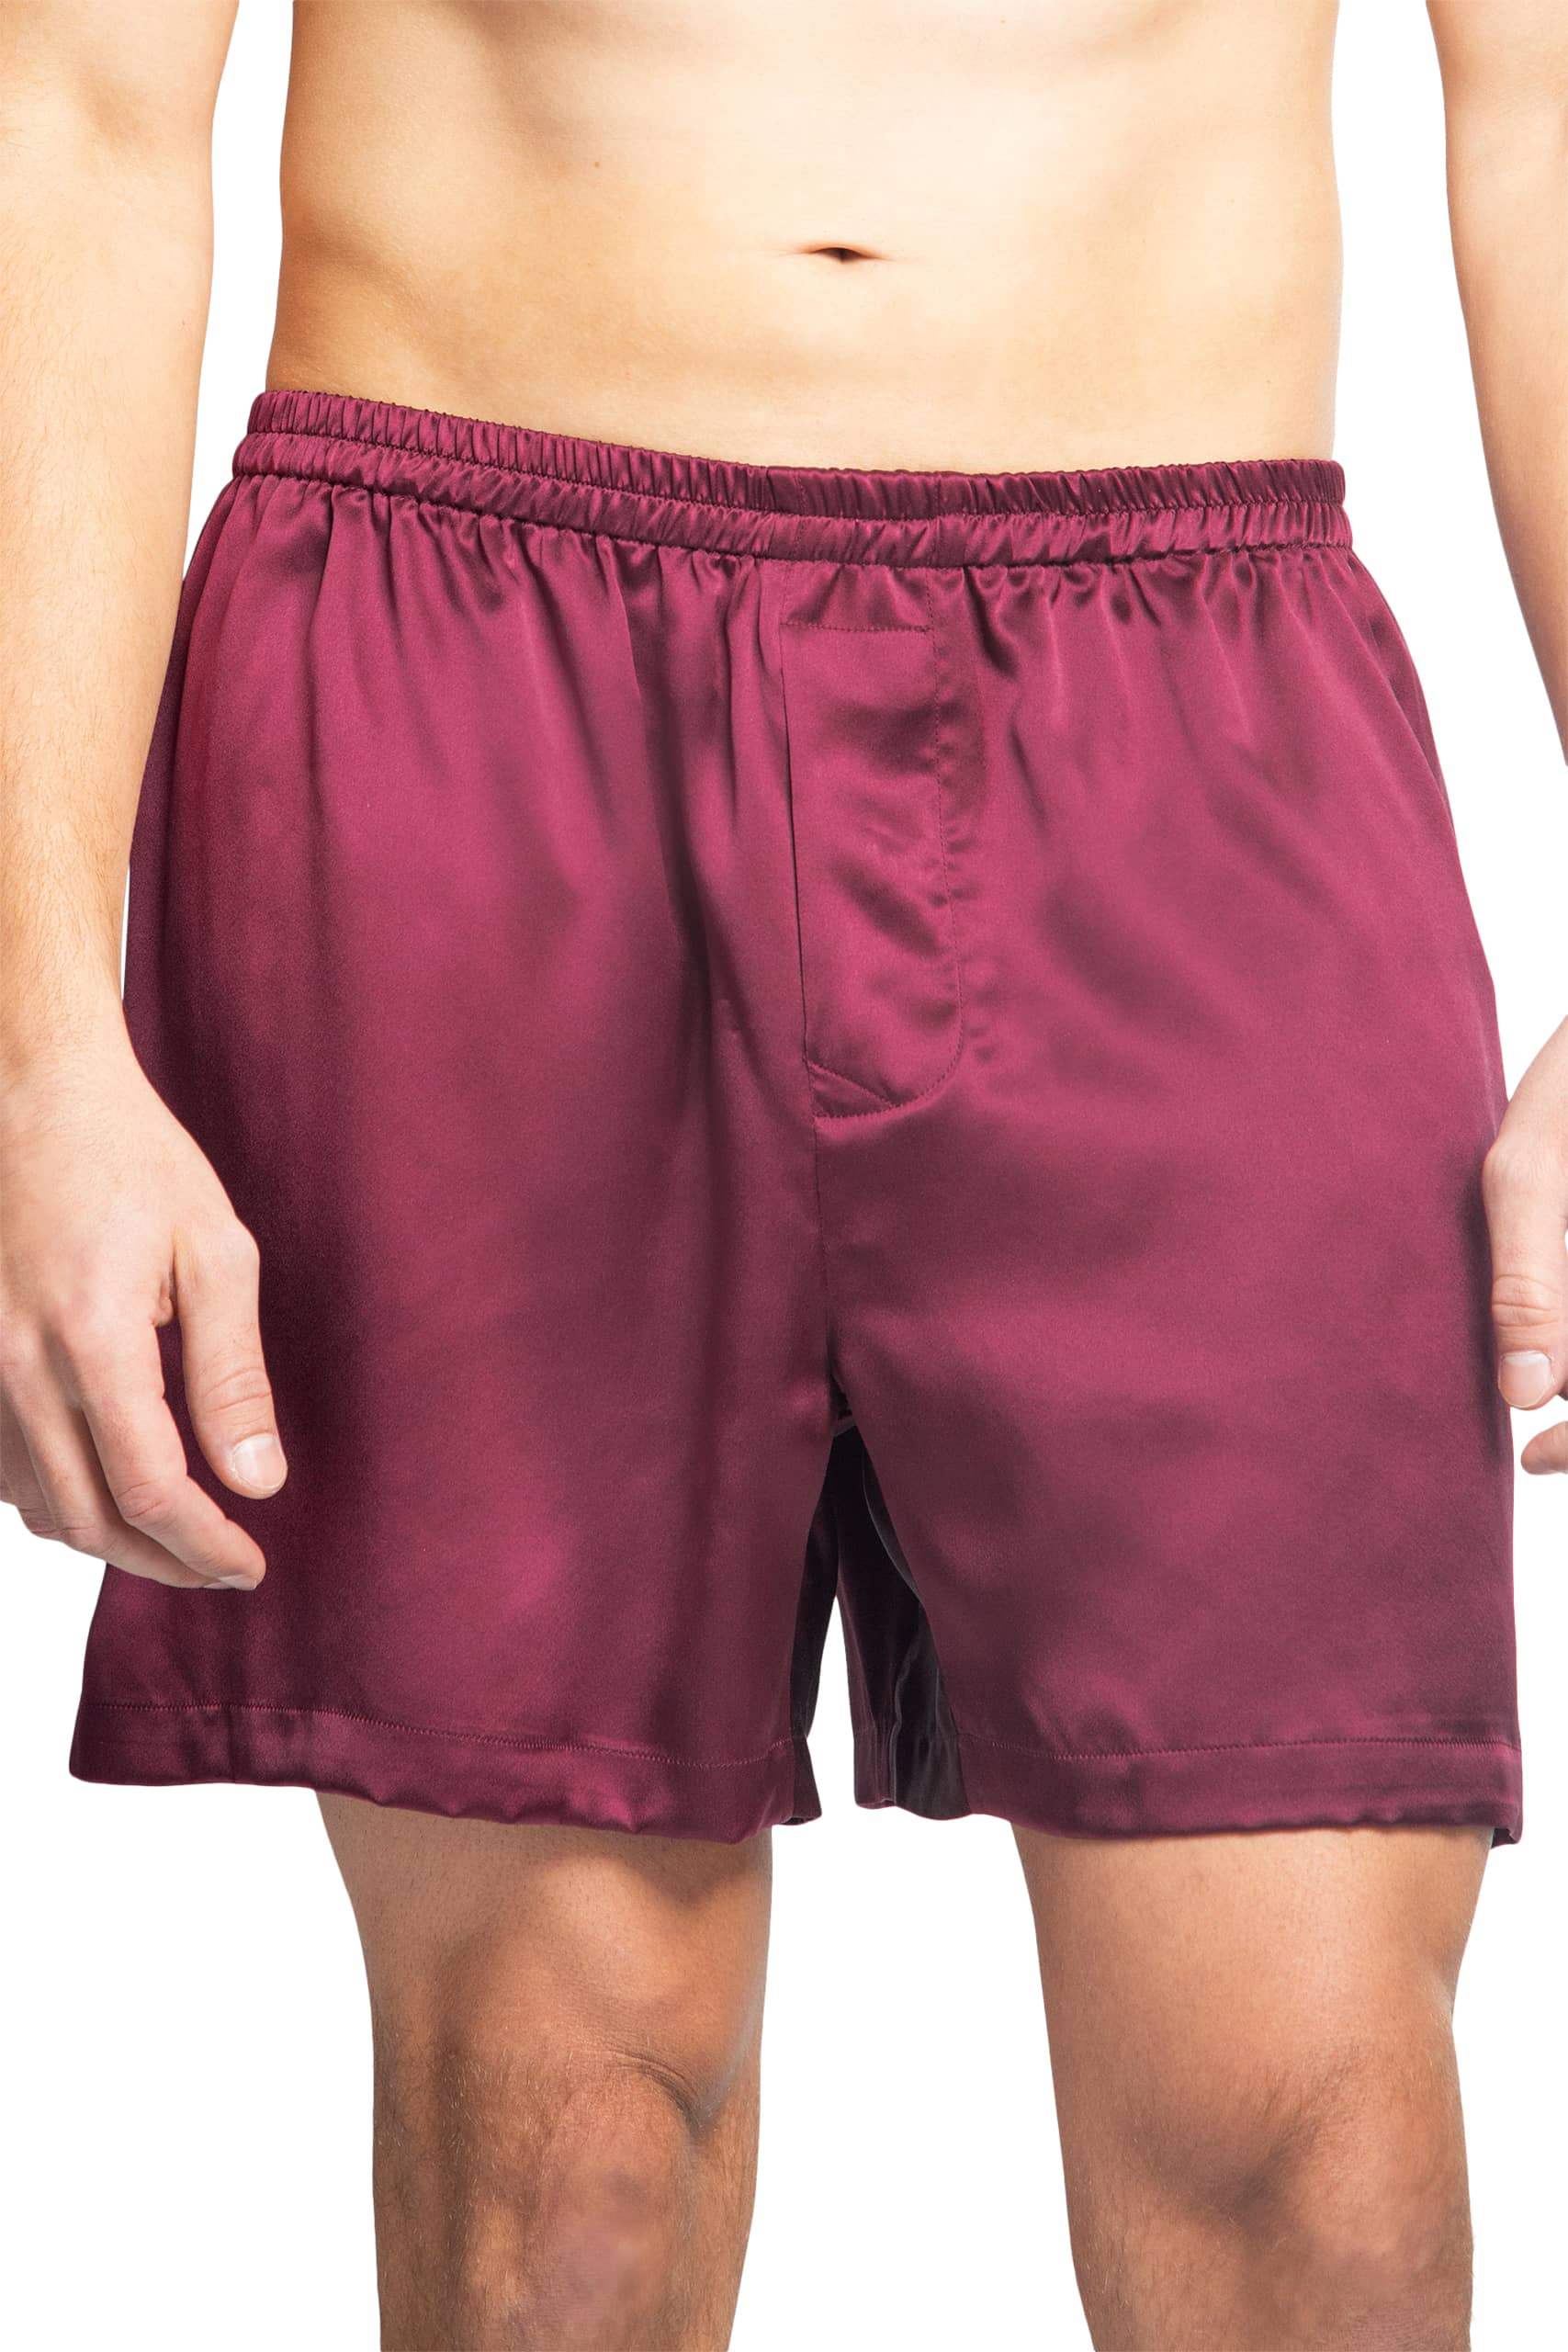 Men's 100% Pure Mulberry Silk Lounge Boxers - Fishers Finery